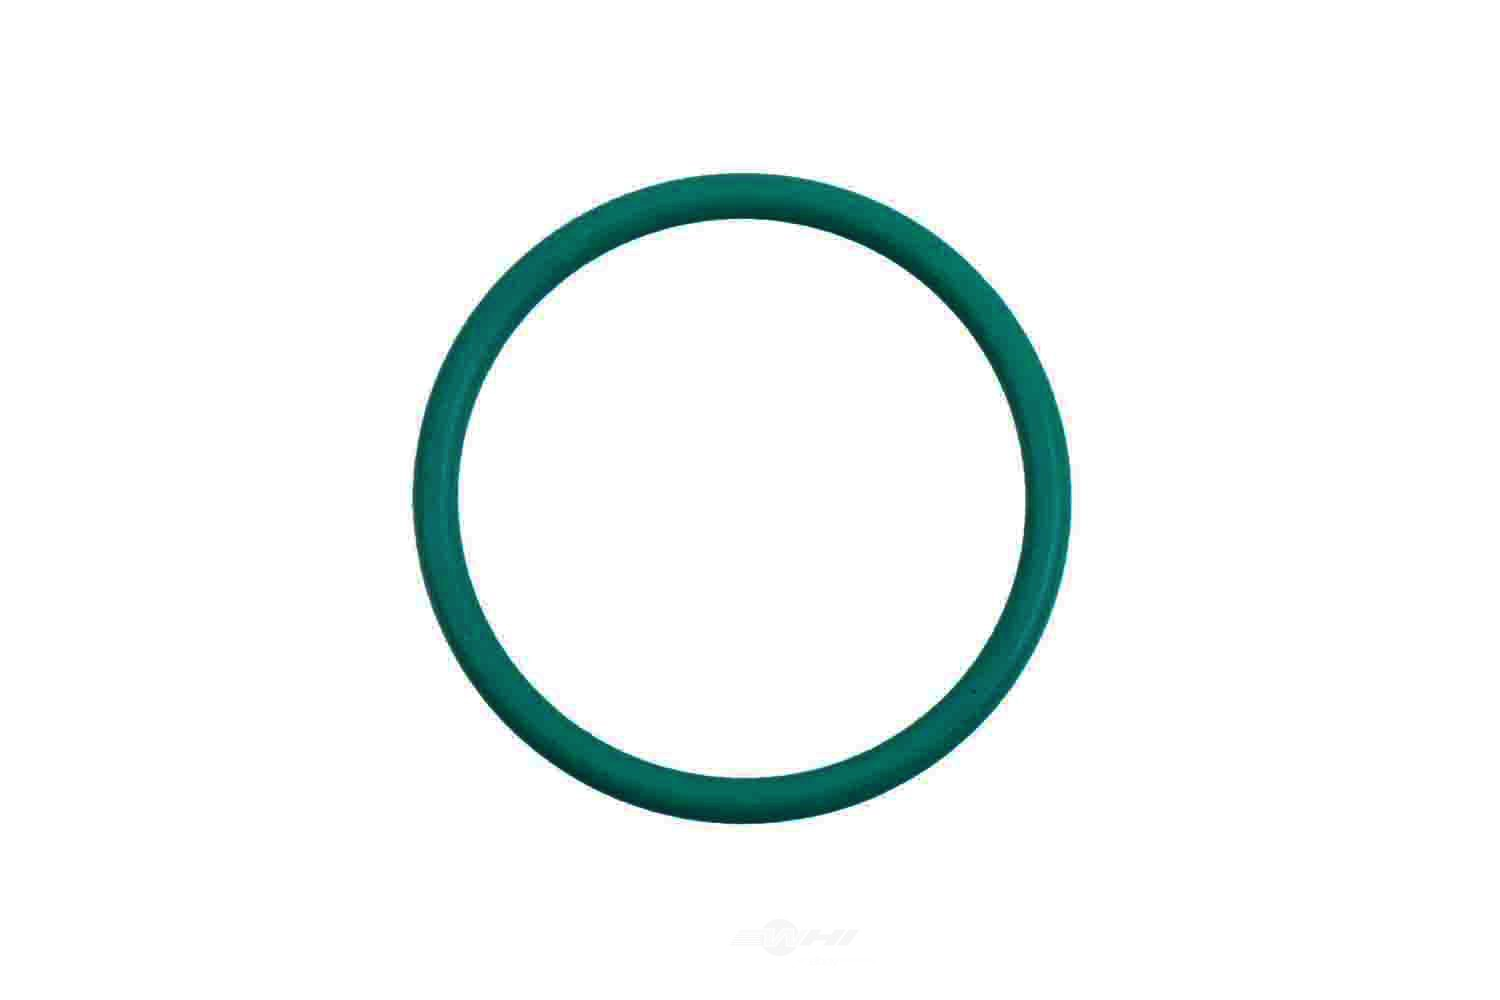 ACDELCO GM ORIGINAL EQUIPMENT - Drive Shaft Seal - DCB 23206807